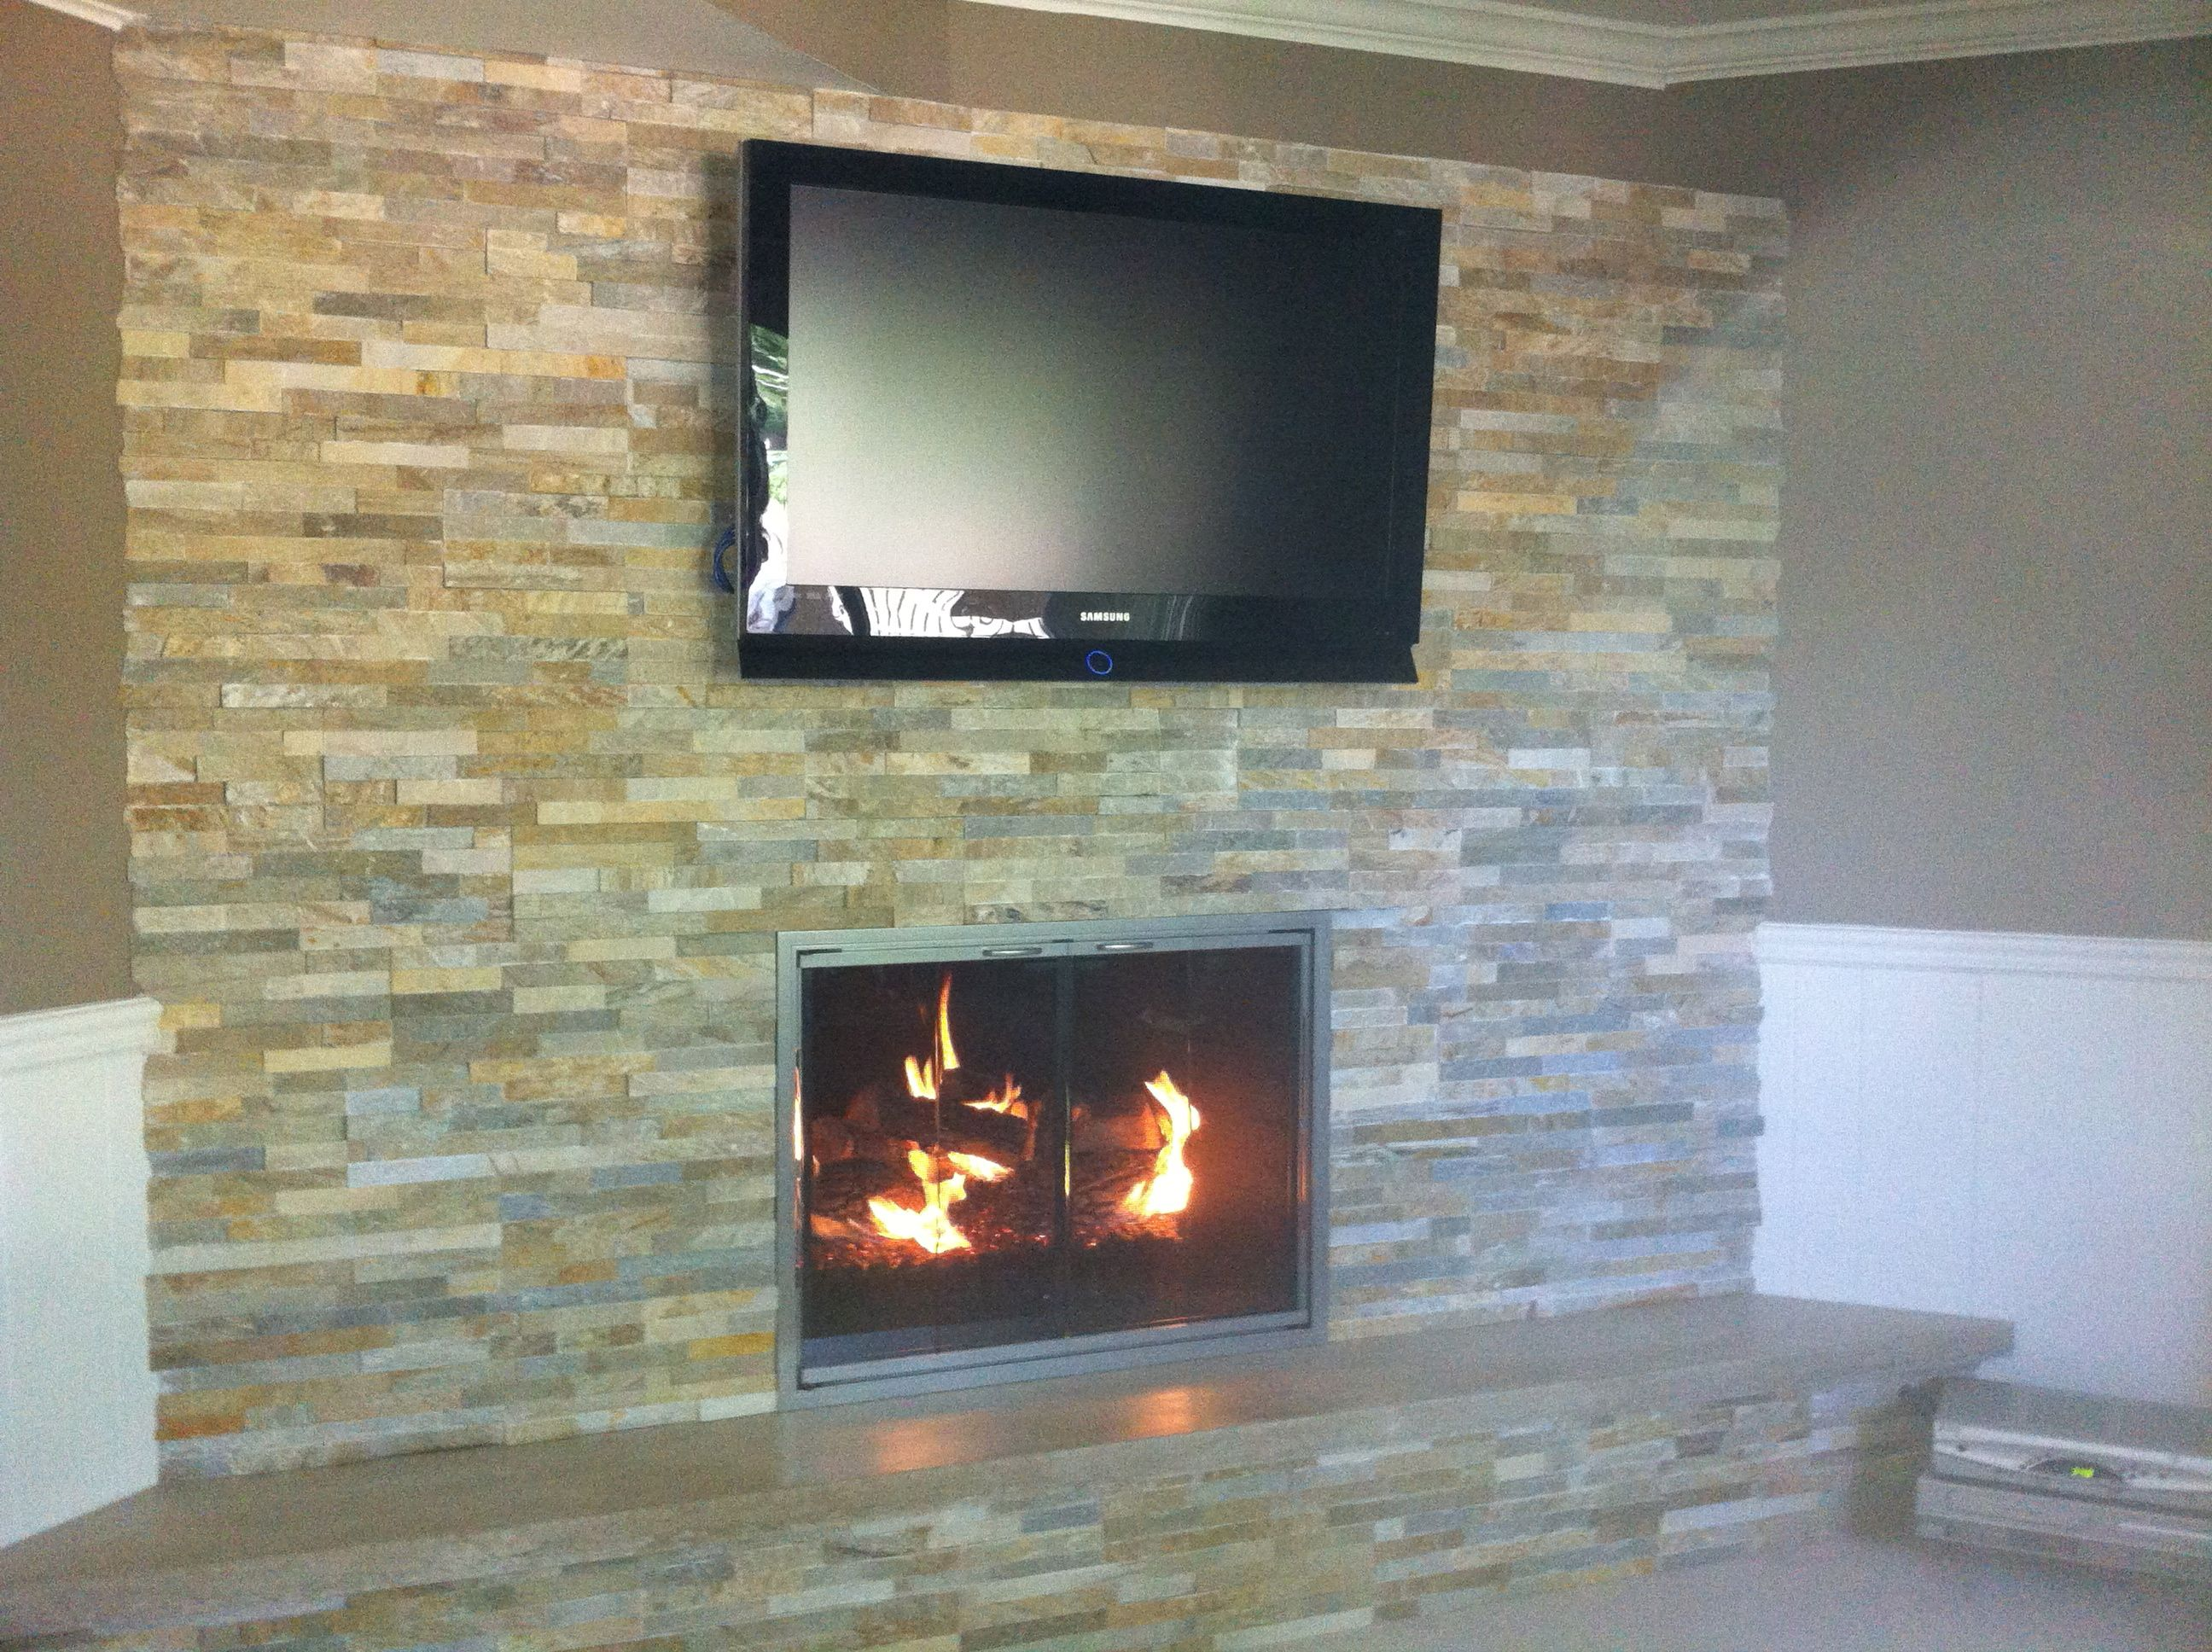 Gas fireplace gas logs by rasmussen glass door by design for Tv over fireplace